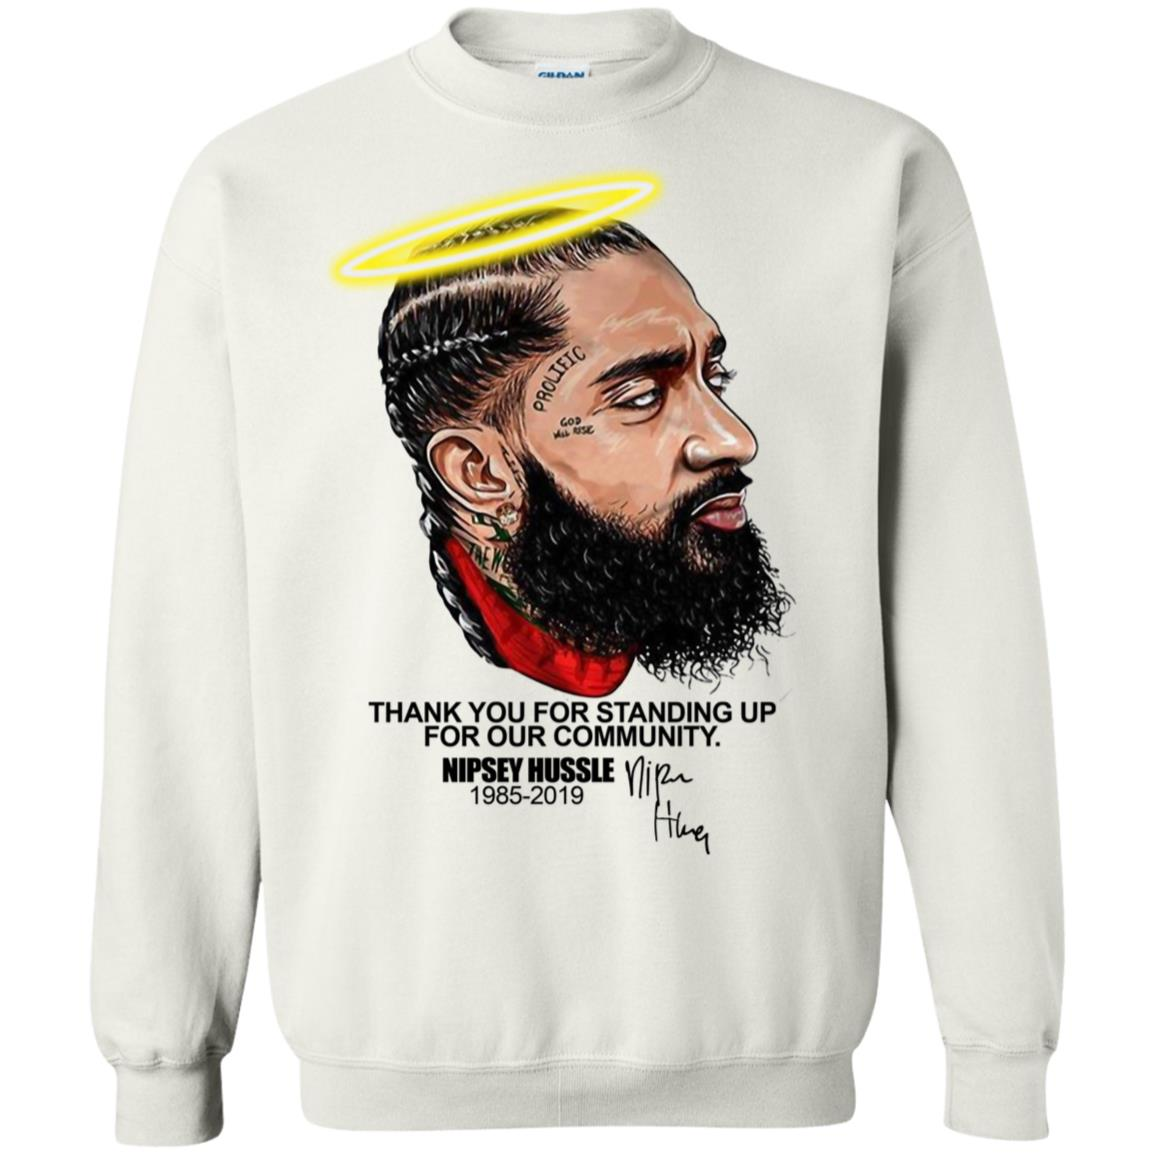 Thank you for standing up for our community Nipsey Hussle